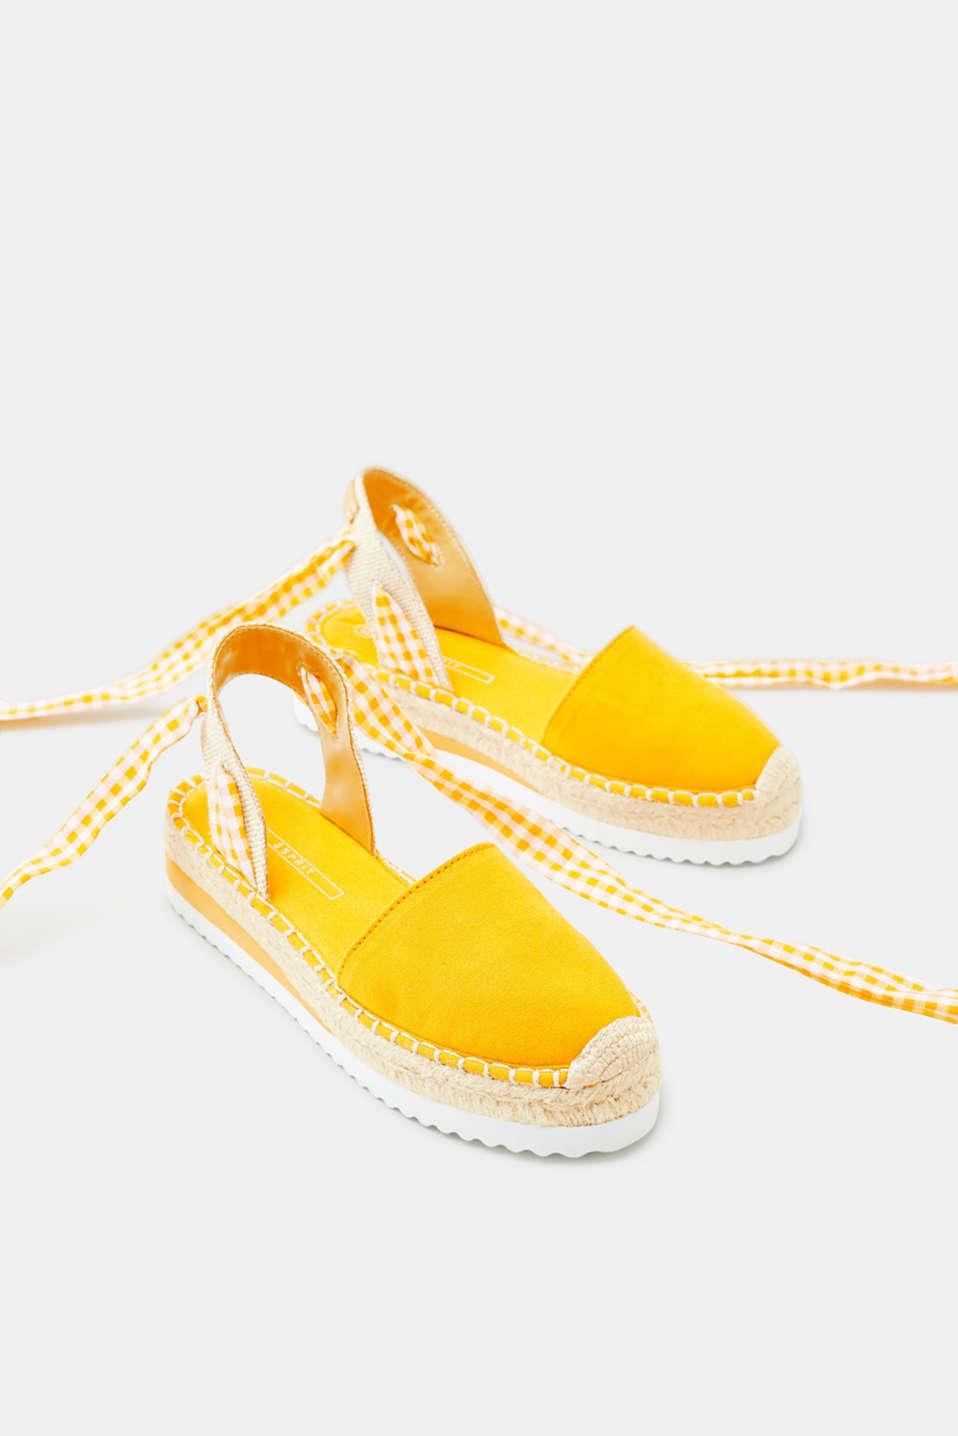 Espadrilles with platform soles, in canvas